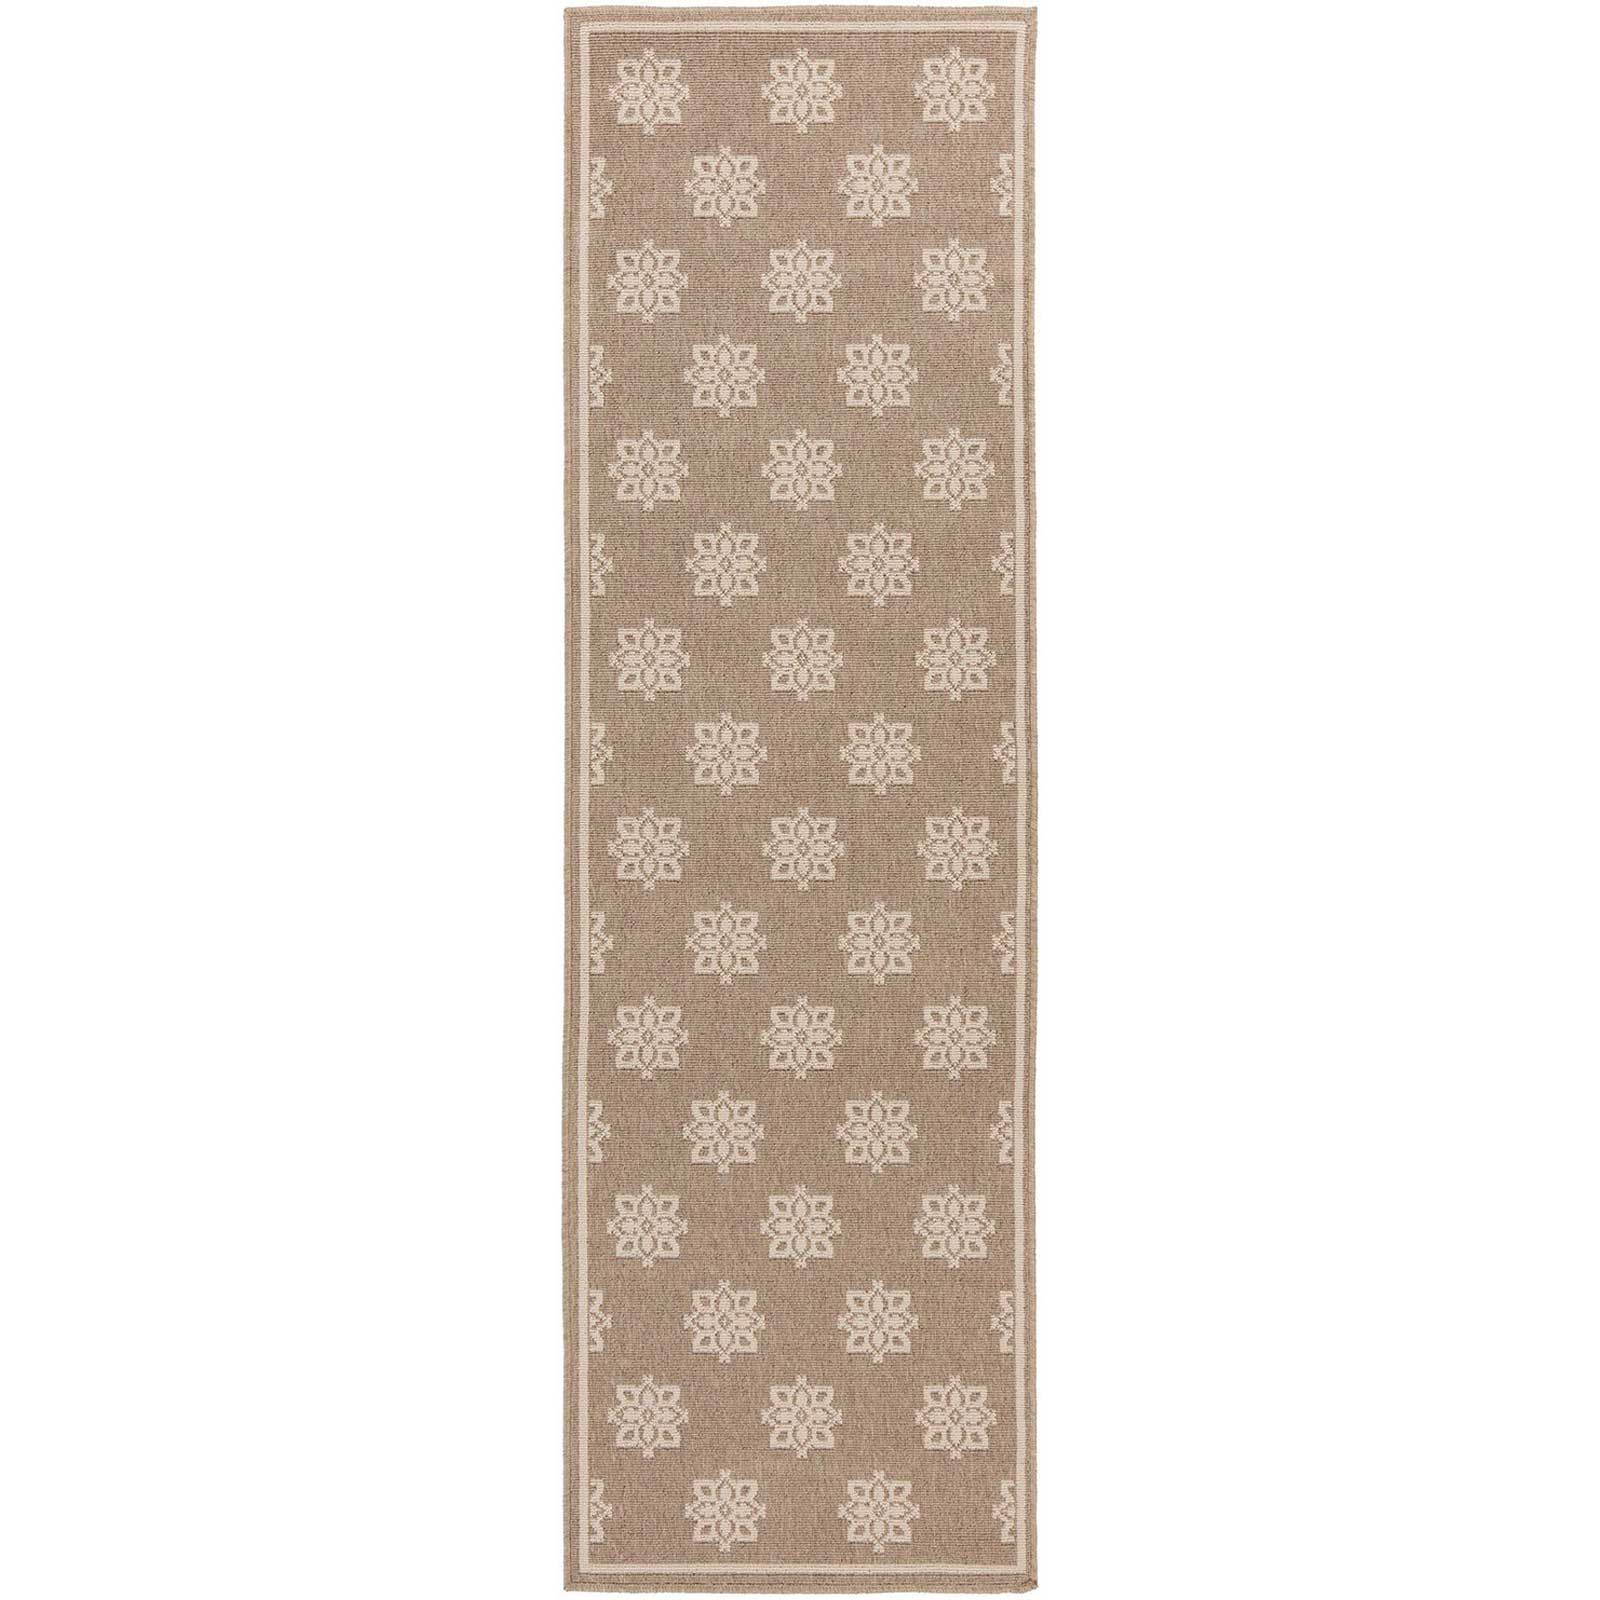 Alfresco Finish Taupe/Beige Runner Rug